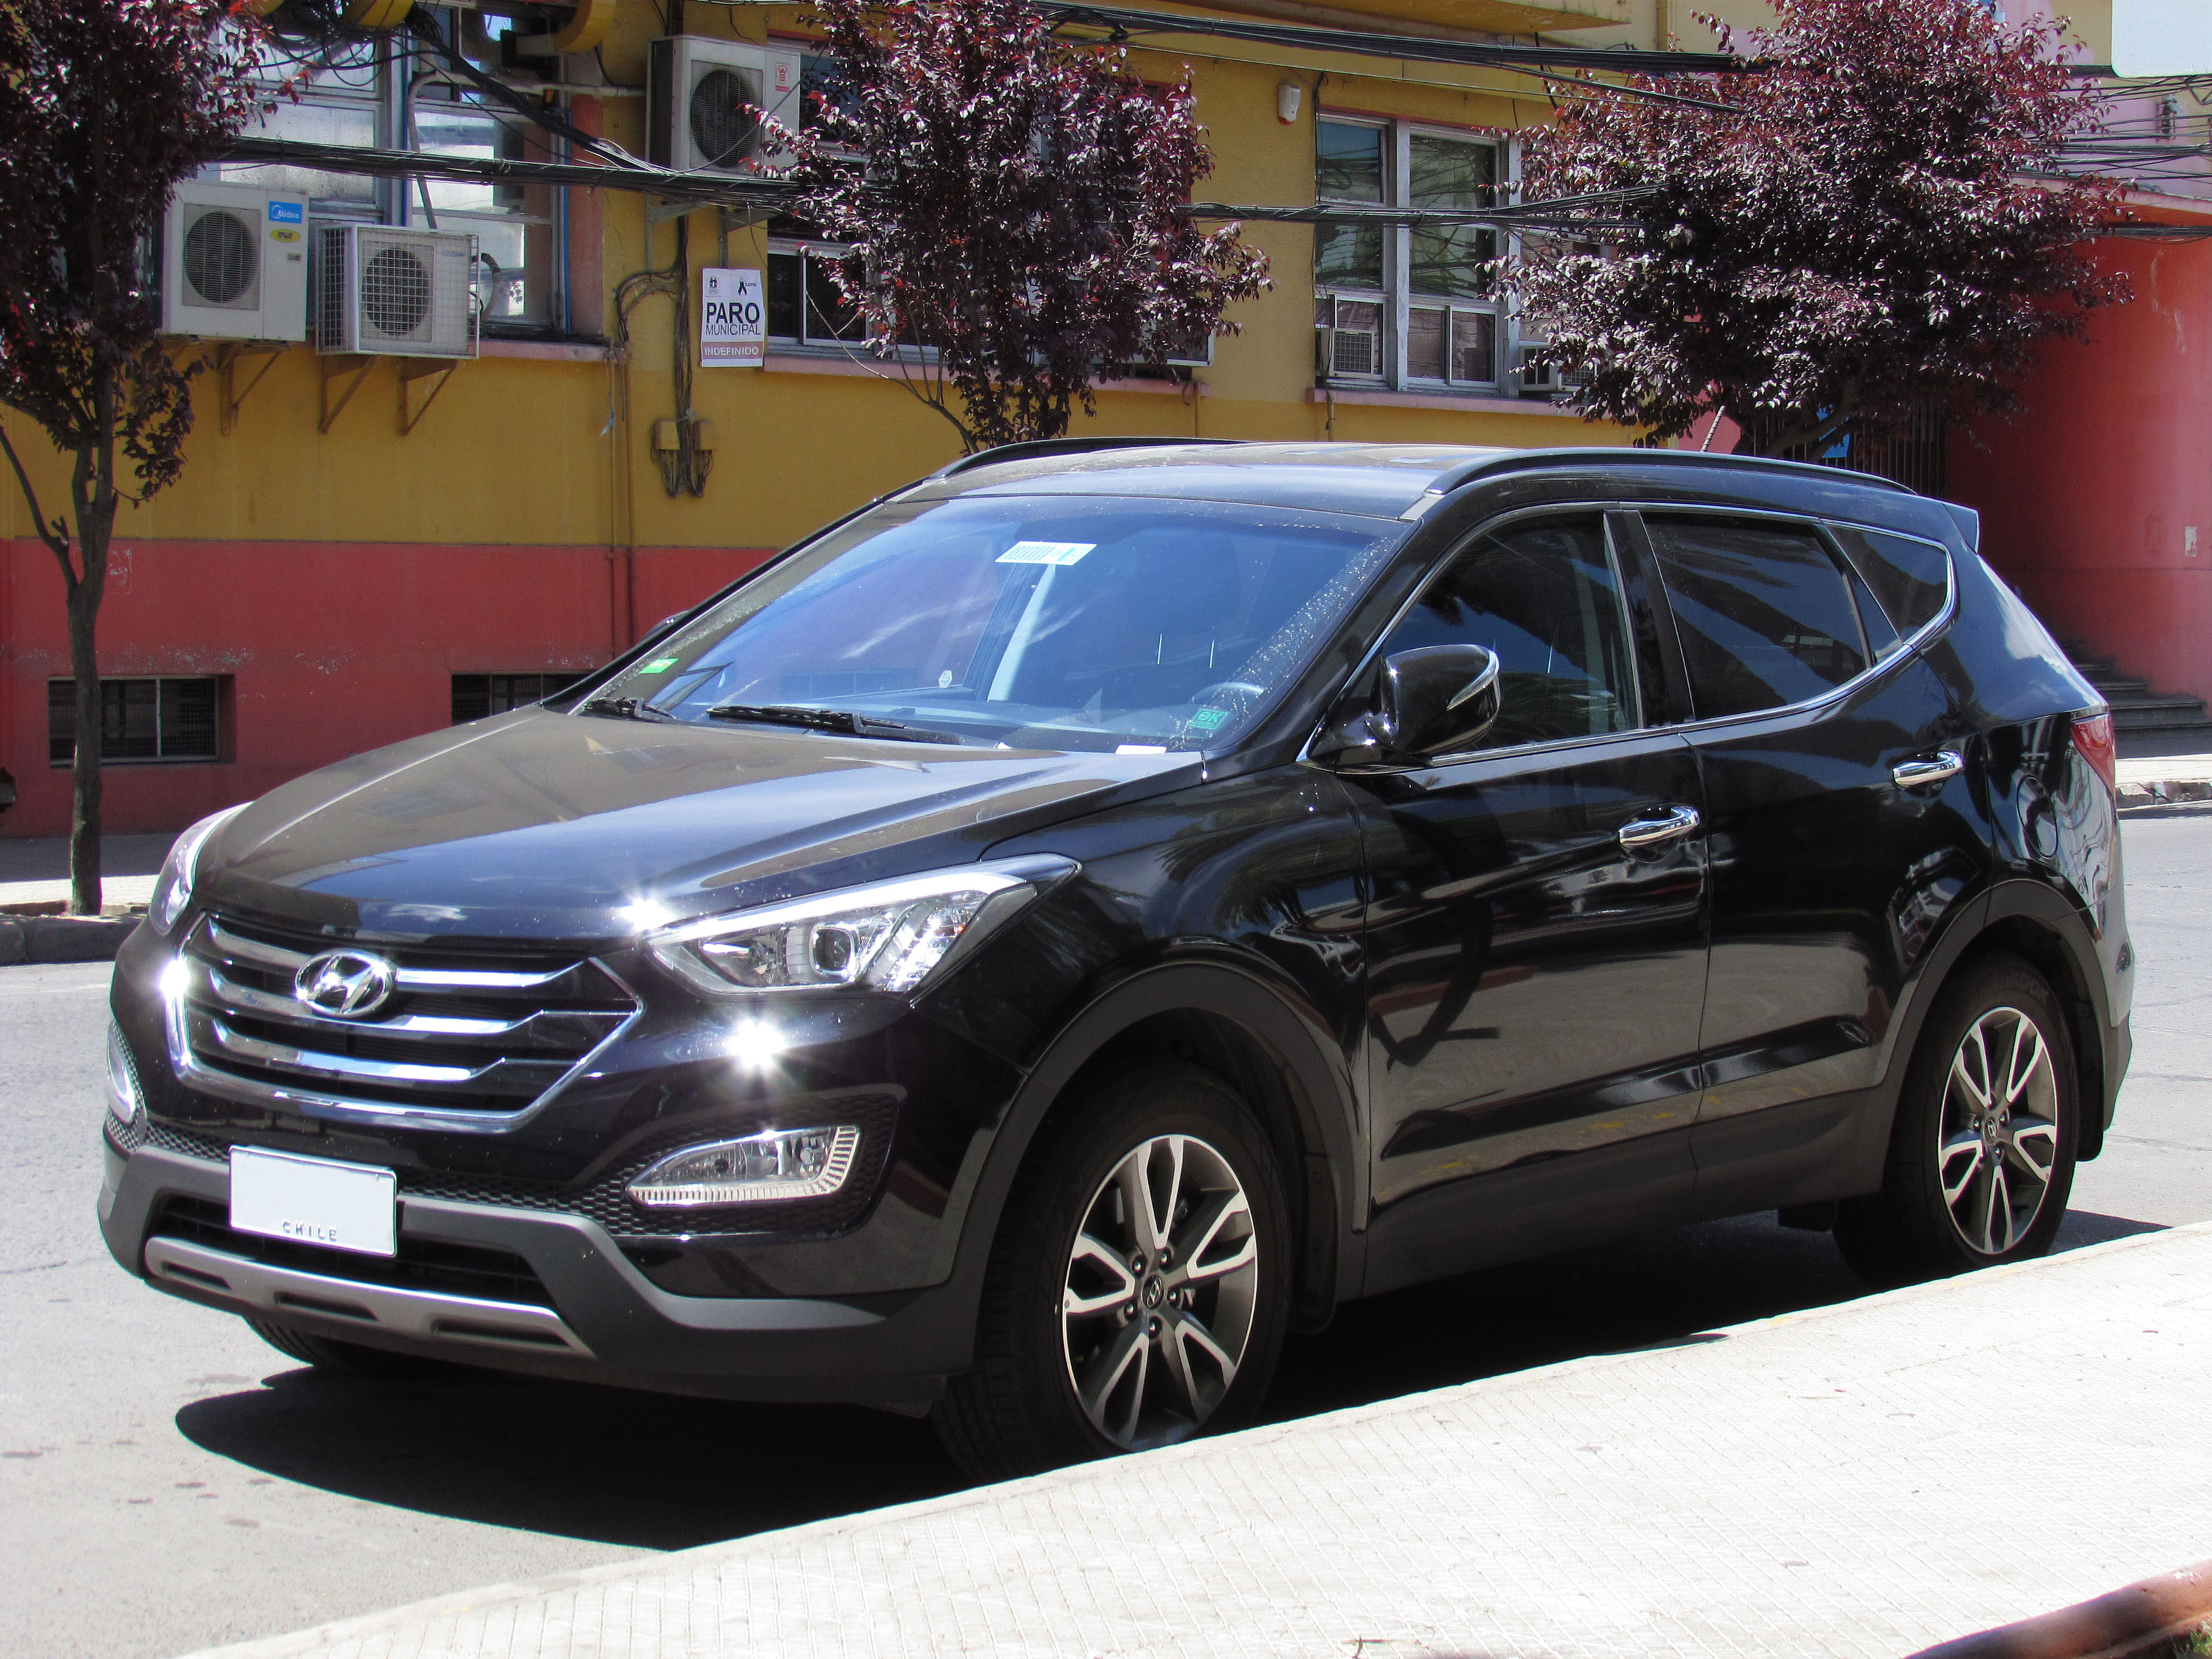 Hyundai Santa Fe 2.4 2014 photo - 1